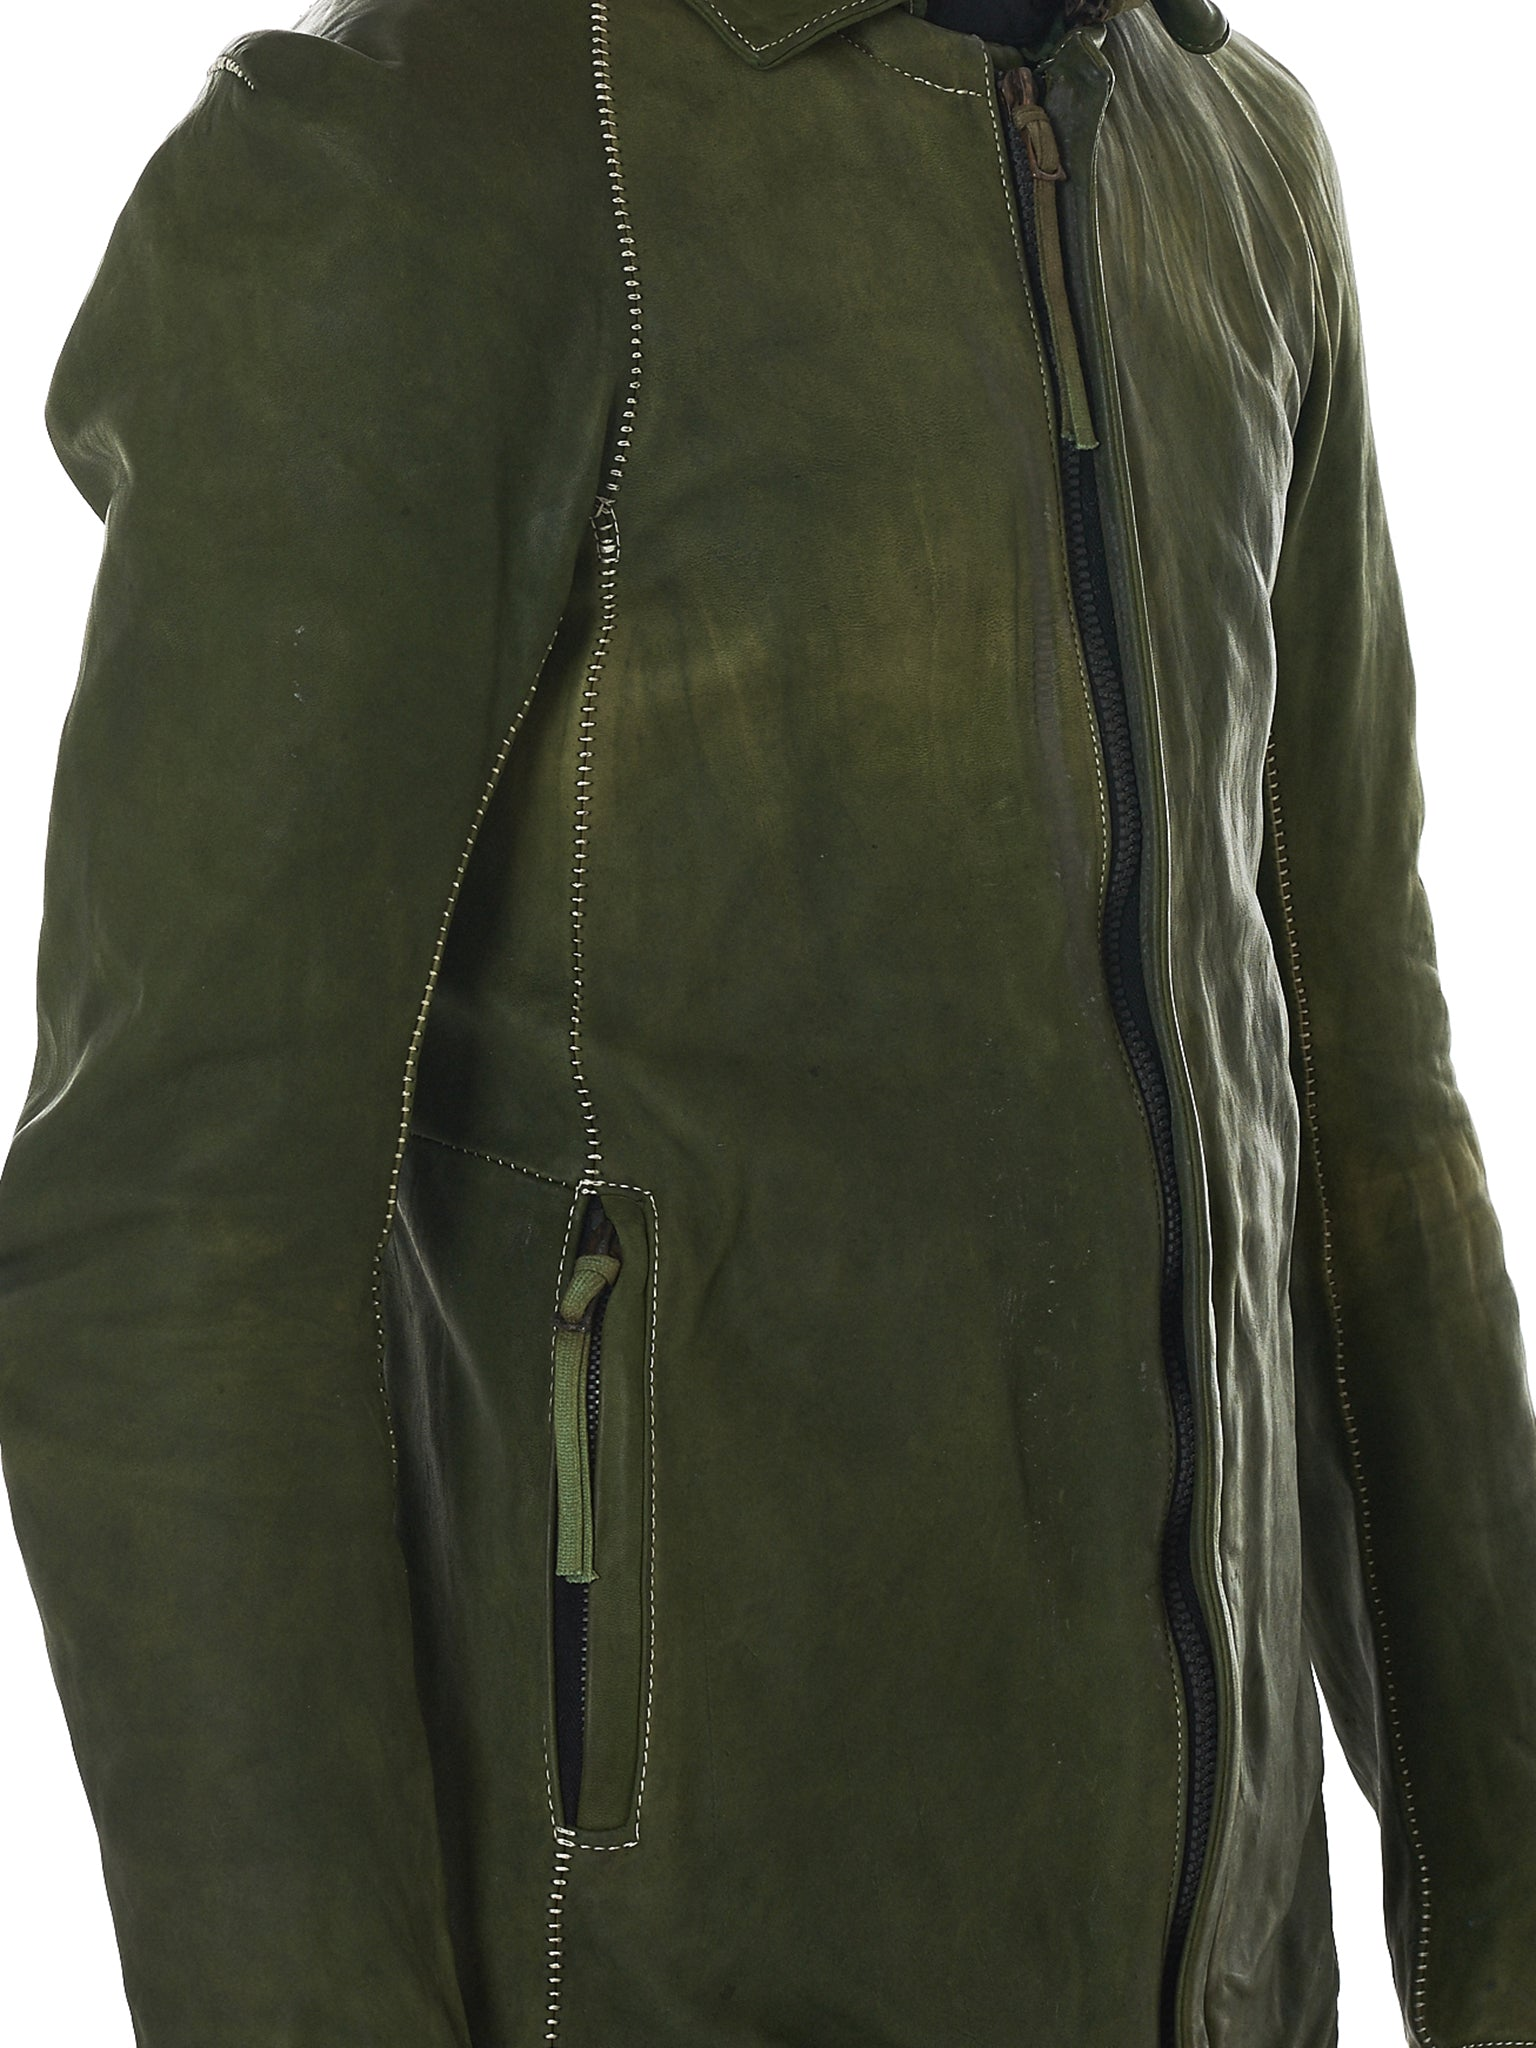 Boris Bidjan Saberi Leather Jacket - Hlorenzo Detail 3